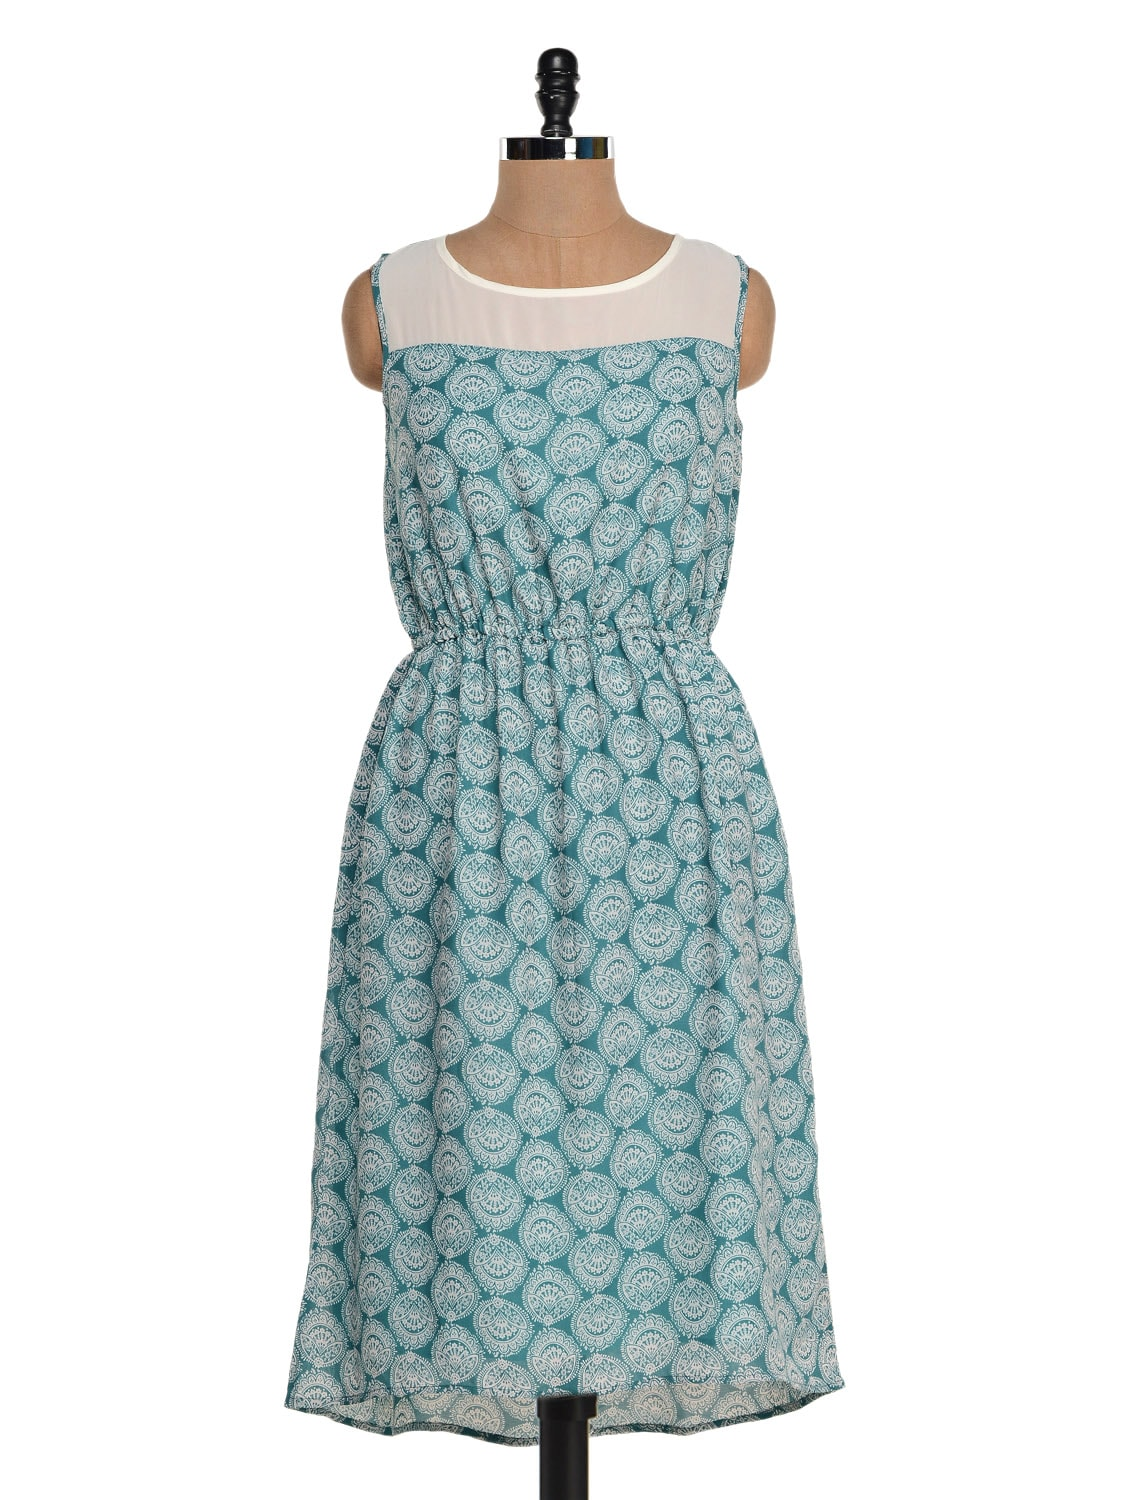 Green And White Printed Dress - Colbrii